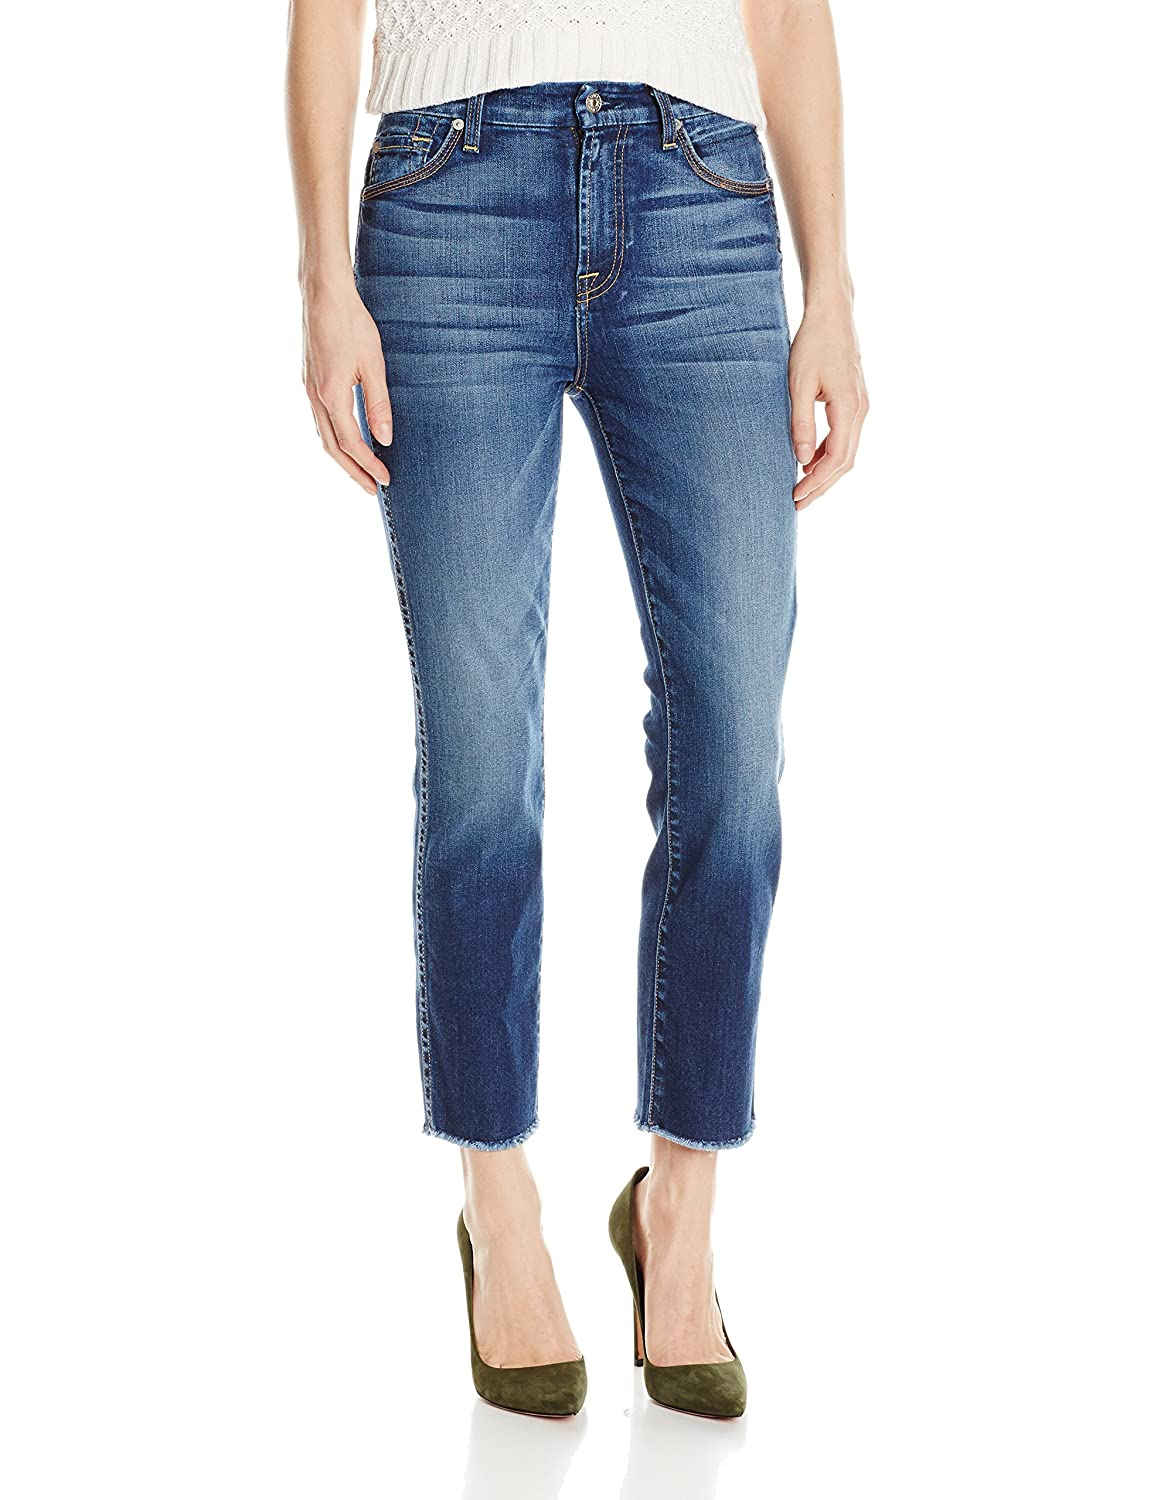 7 For All Mankind Women's Ankle Straight with Raw Hem Jean